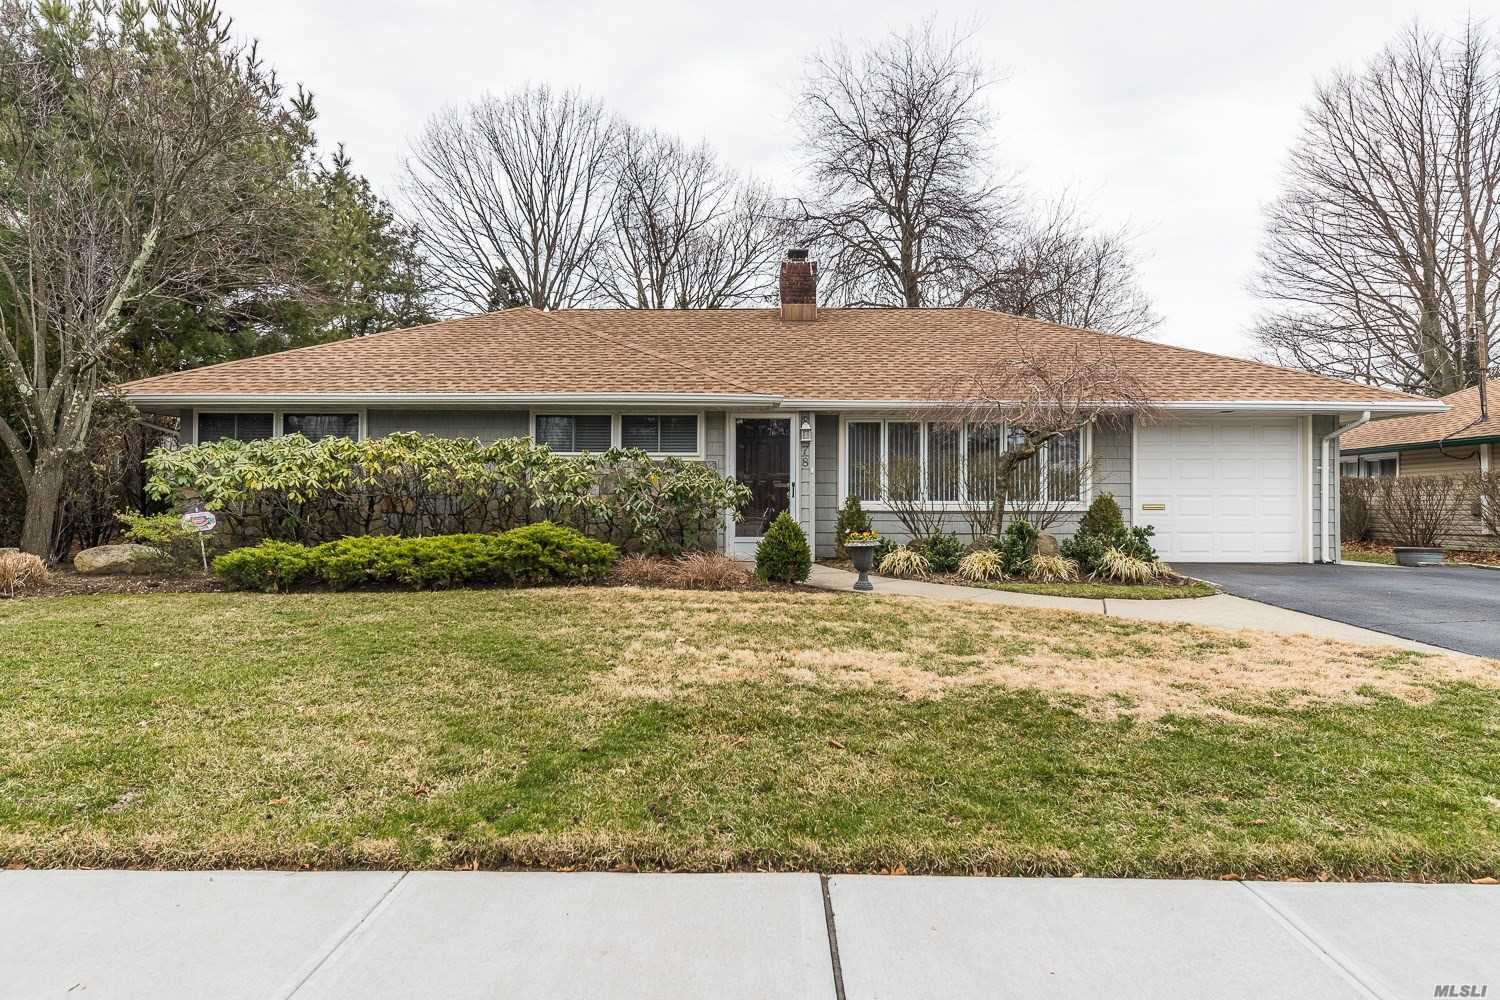 Beautifully appointed ranch with perfect floorplan. Master suite has it's own bath plus 3 closets. Living & Dining Rooms open to the family room which opens to the granite kitchen. Fenced well manicured yard also has a shed and TimberTrex deck.